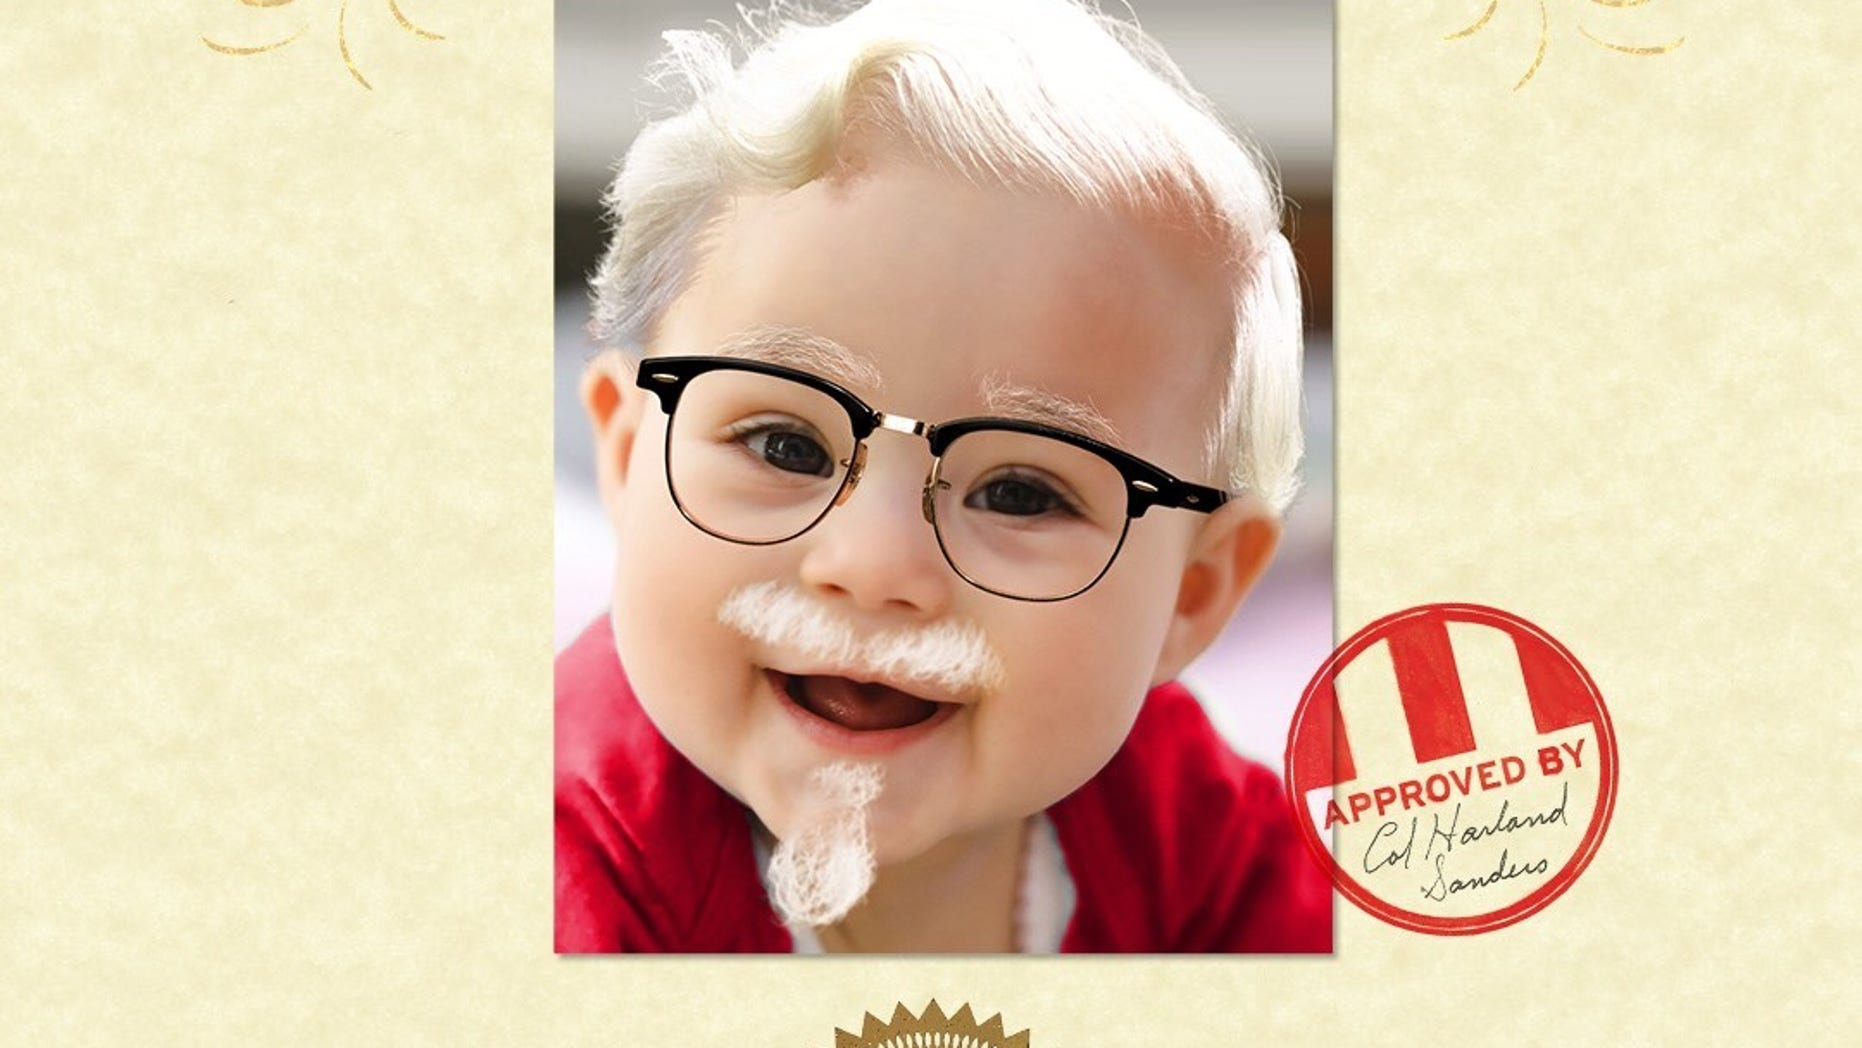 KFC's new 'Name Your Baby Harland' contest tasked parents with doing just that for a chance at $11,000.